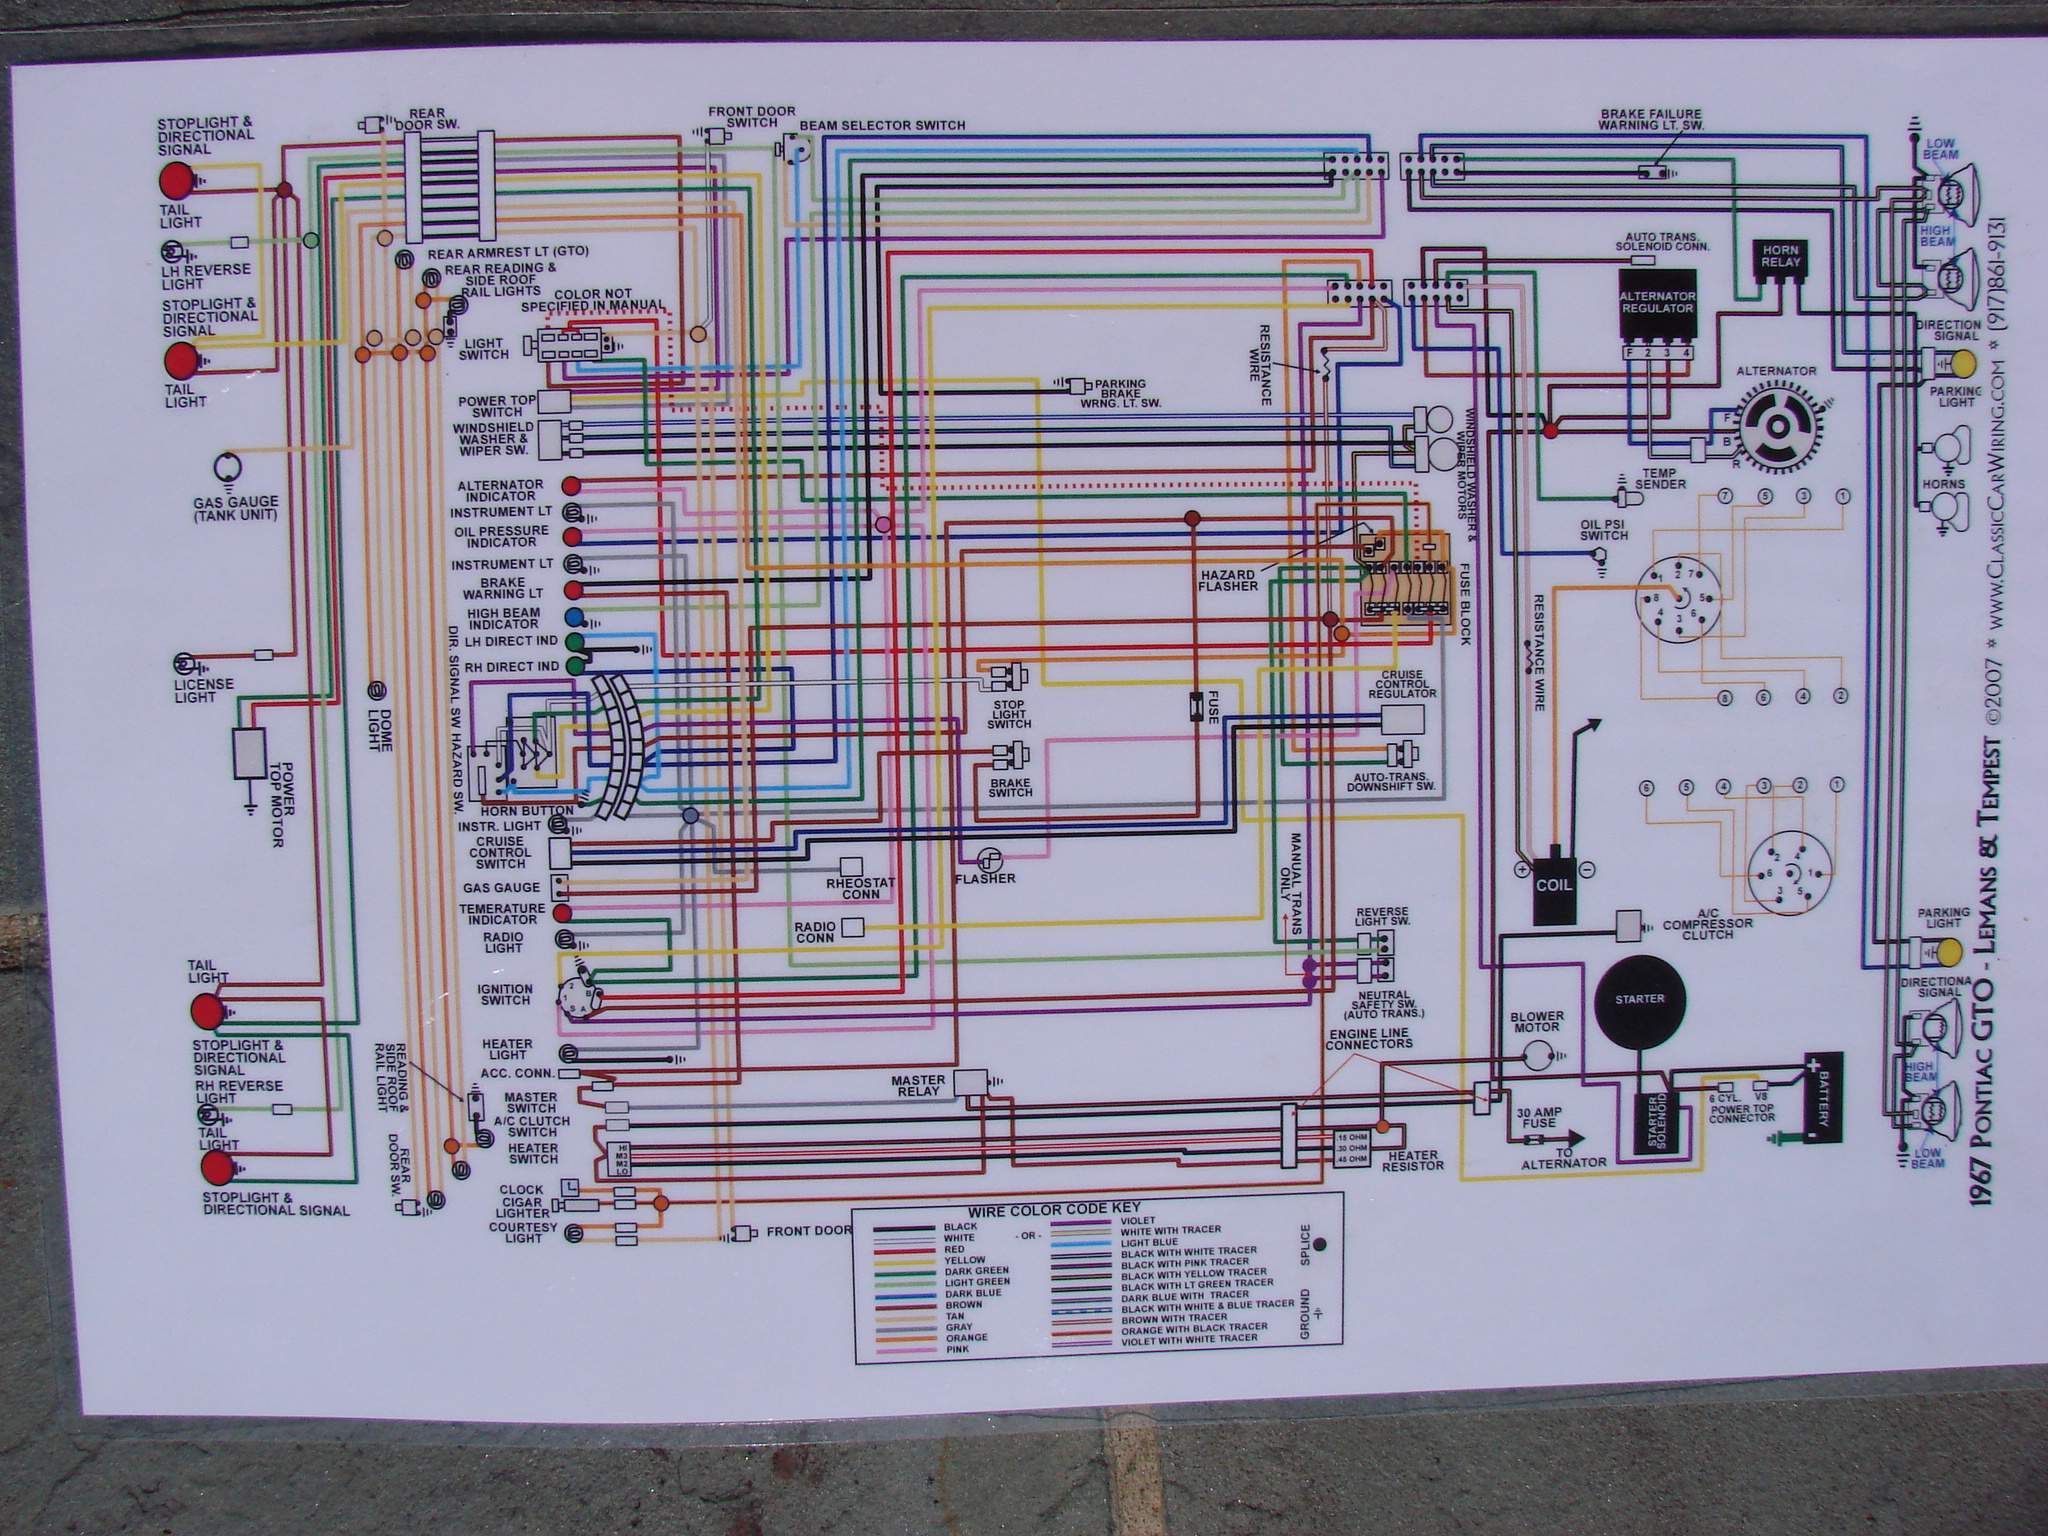 67 Camaro Wiring Diagram Ignition Hot Rod Forum Taco Sr502 4 Firebird Headlight Solidfonts Collection 1967 Starter Pictures Wire